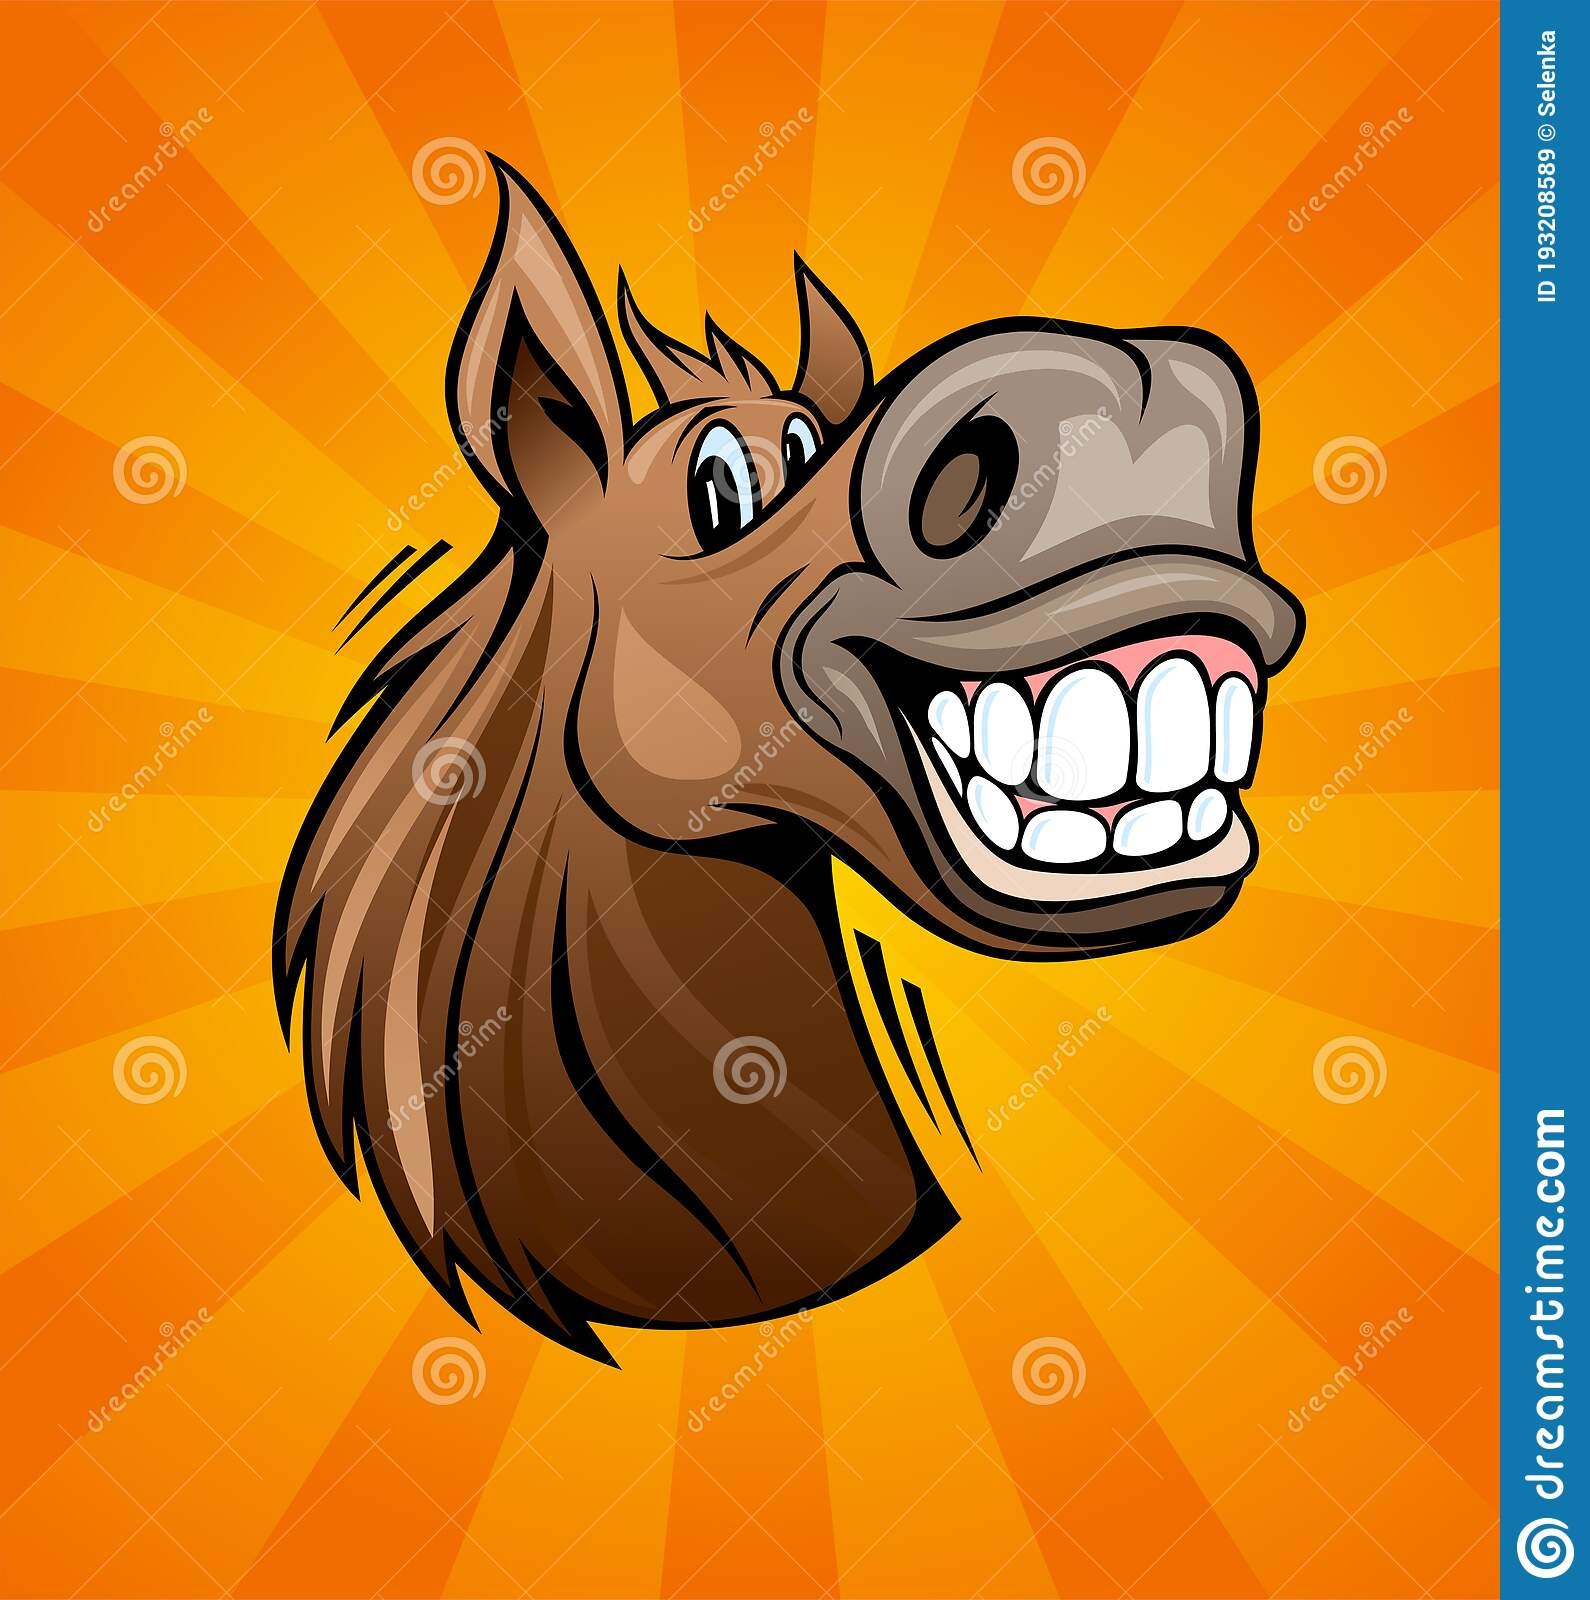 Funny Horse Head Smiling Stock Illustrations 167 Funny Horse Head Smiling Stock Illustrations Vectors Clipart Dreamstime